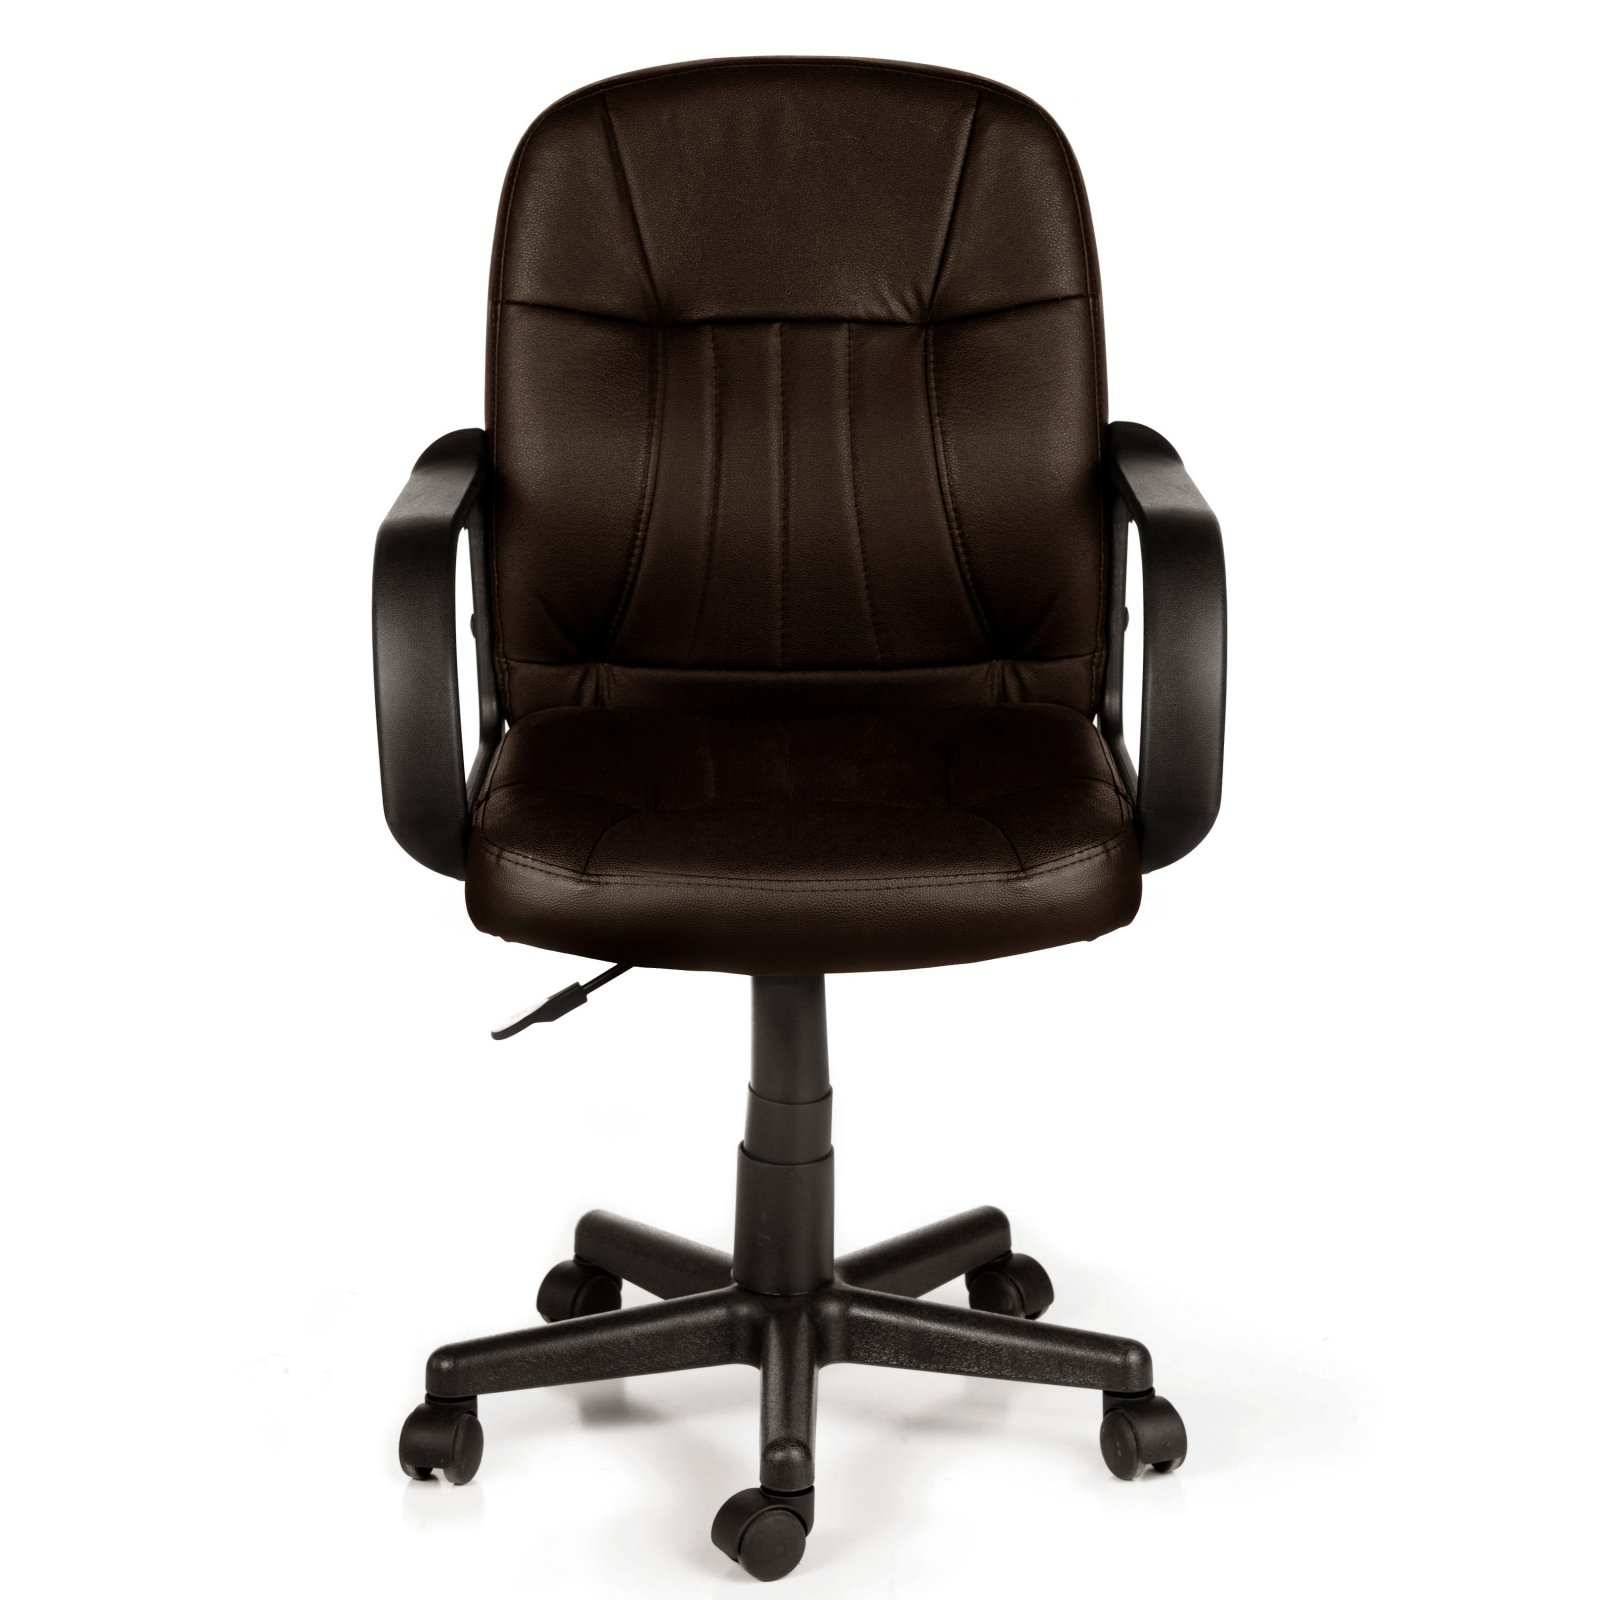 Comfort Products 60-5607M Mid-Back Leather Office Chair, Black - Traveller Location